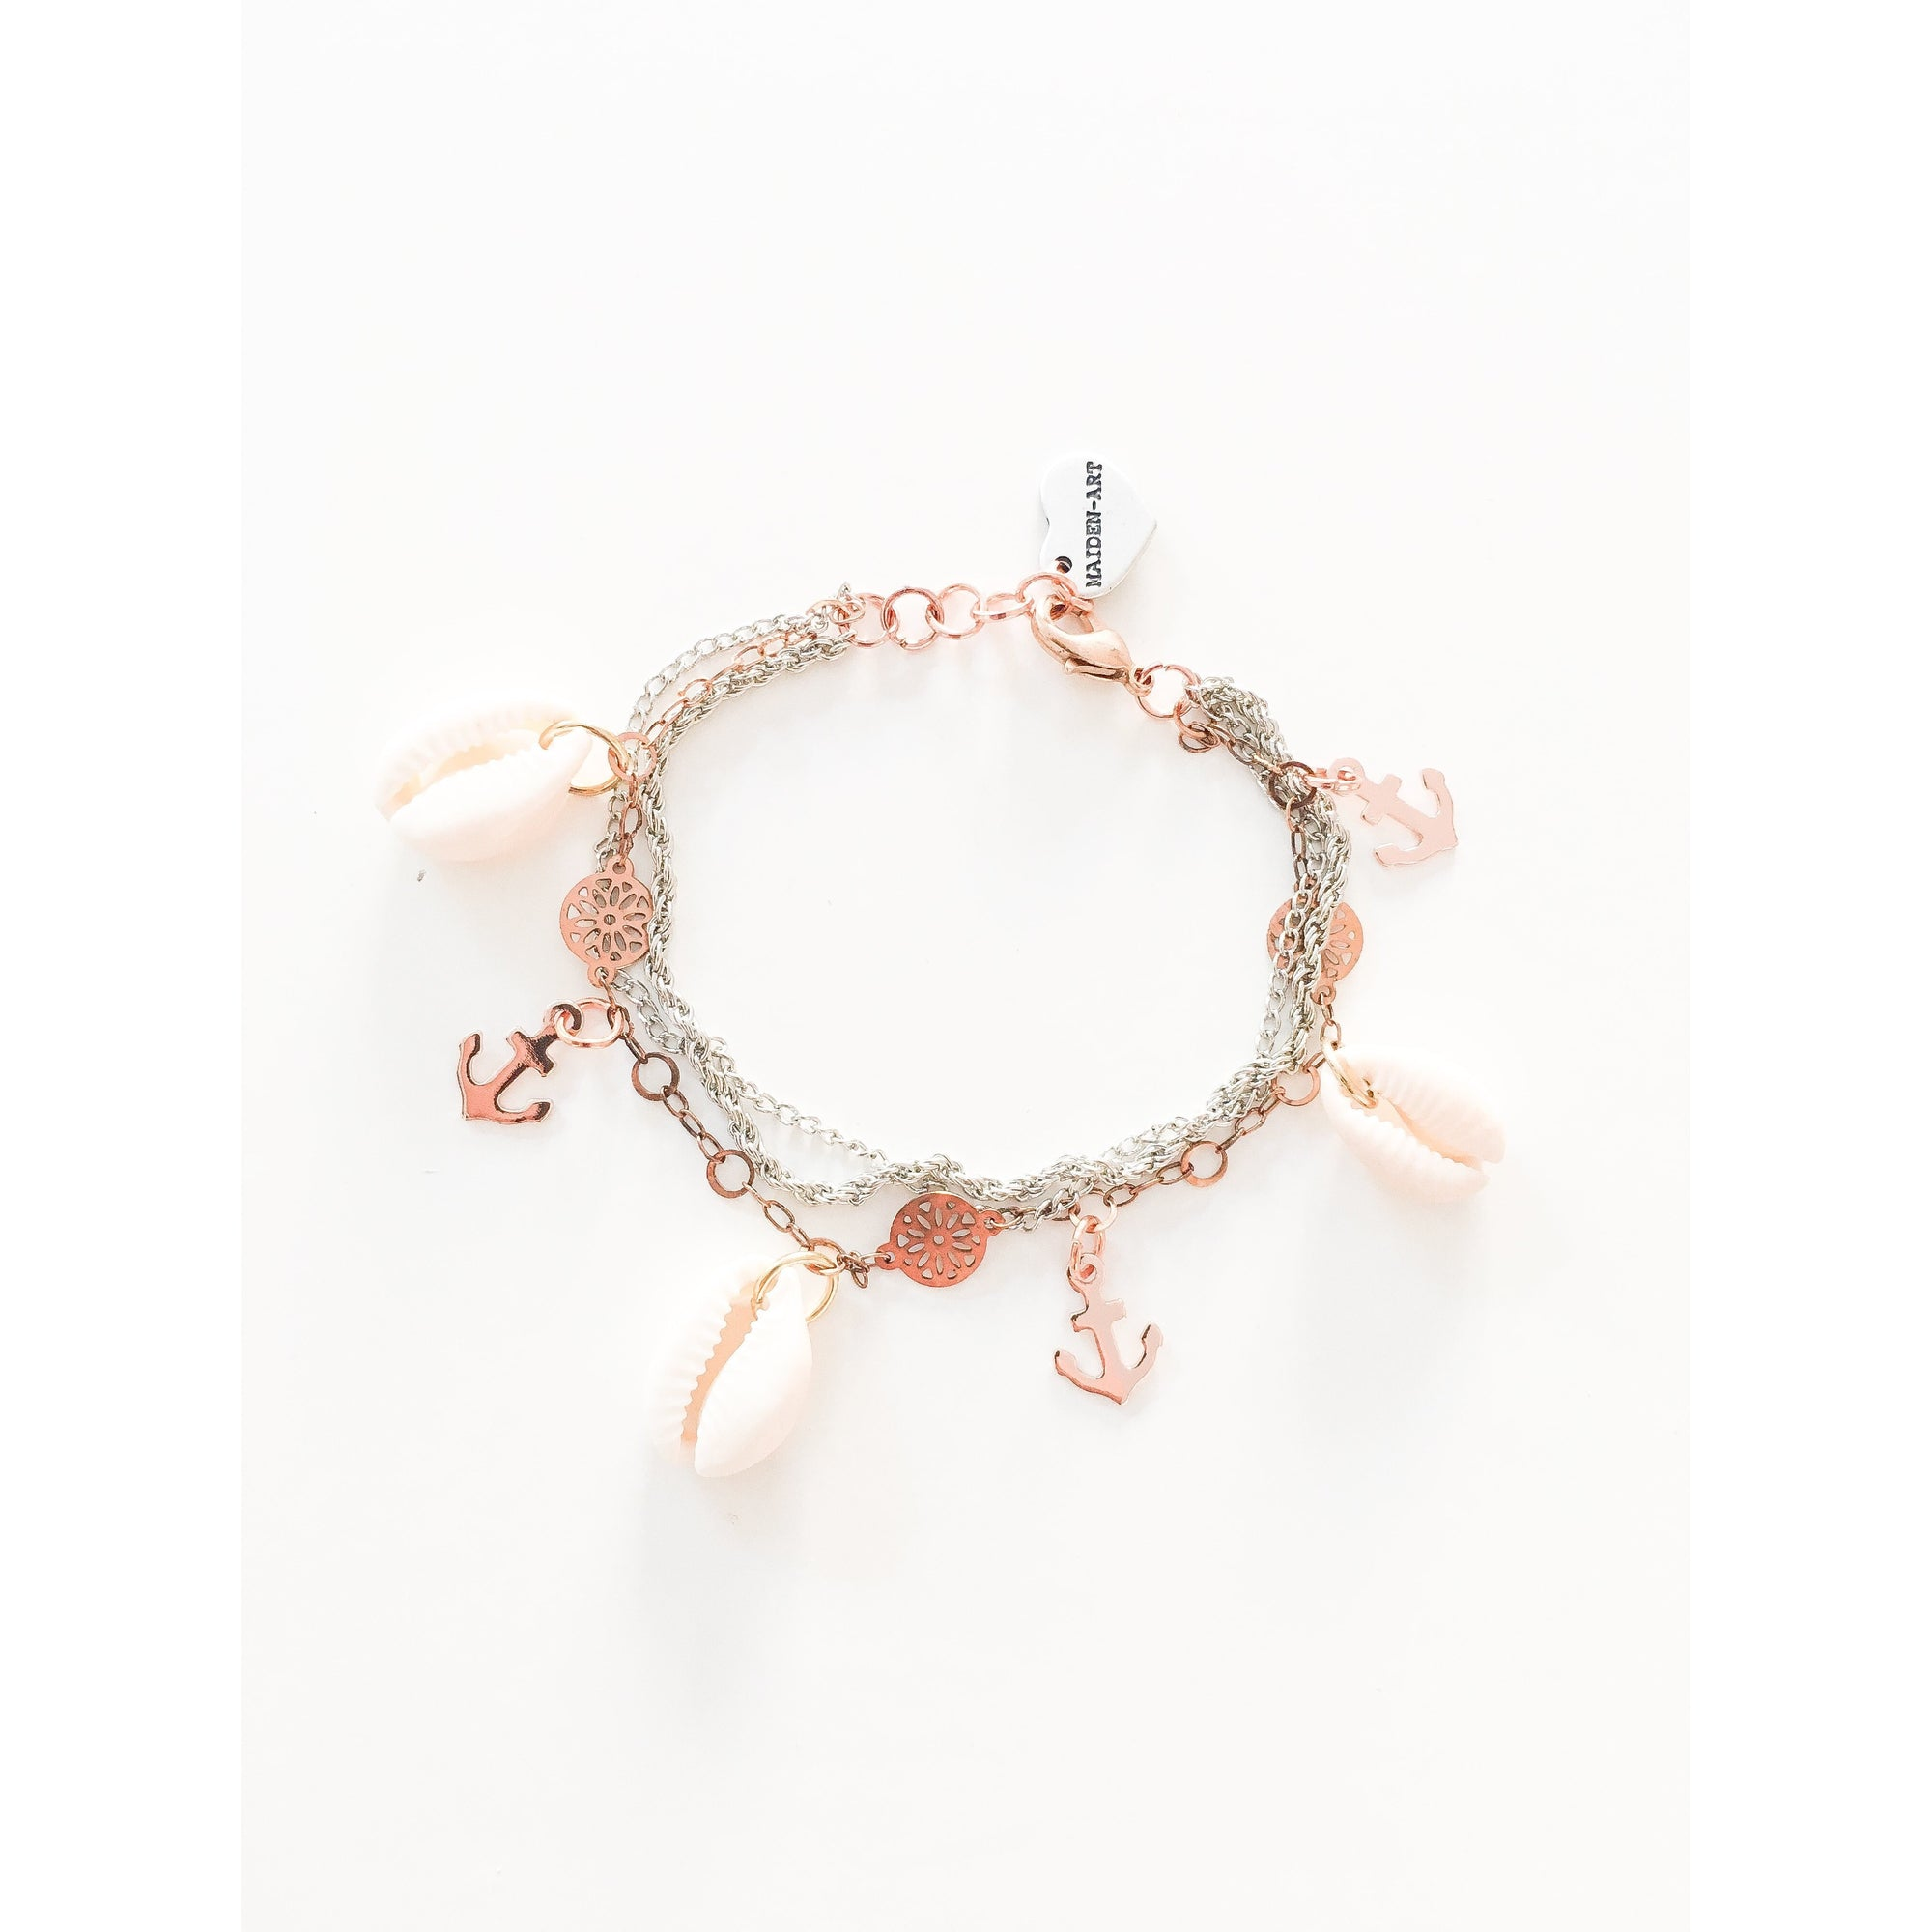 Seashells and Anchor Bracelet - Miraposa